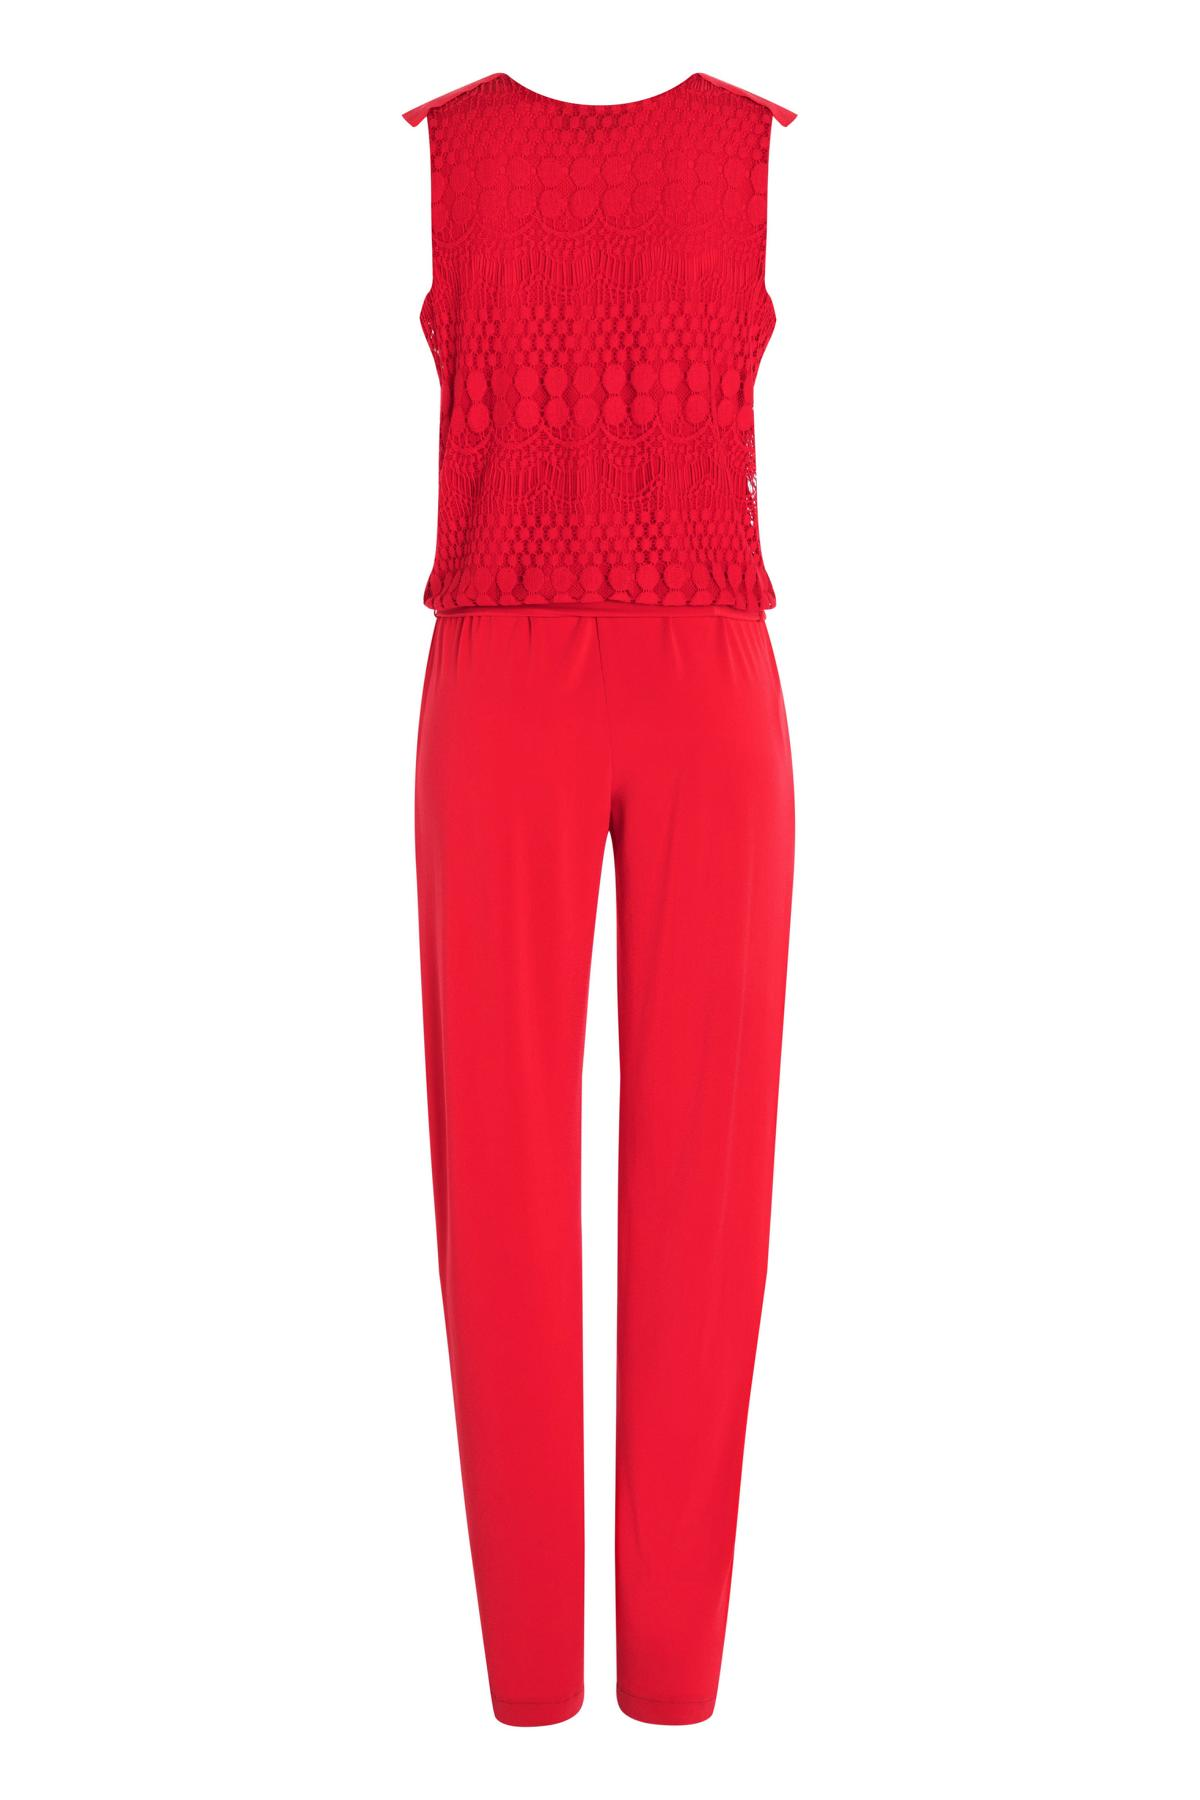 PRODUCT_PICTURE_PRE_7Ana Alcazar Jumpsuit Saoty Rot PRODUCT_PICTURE_SUF_7